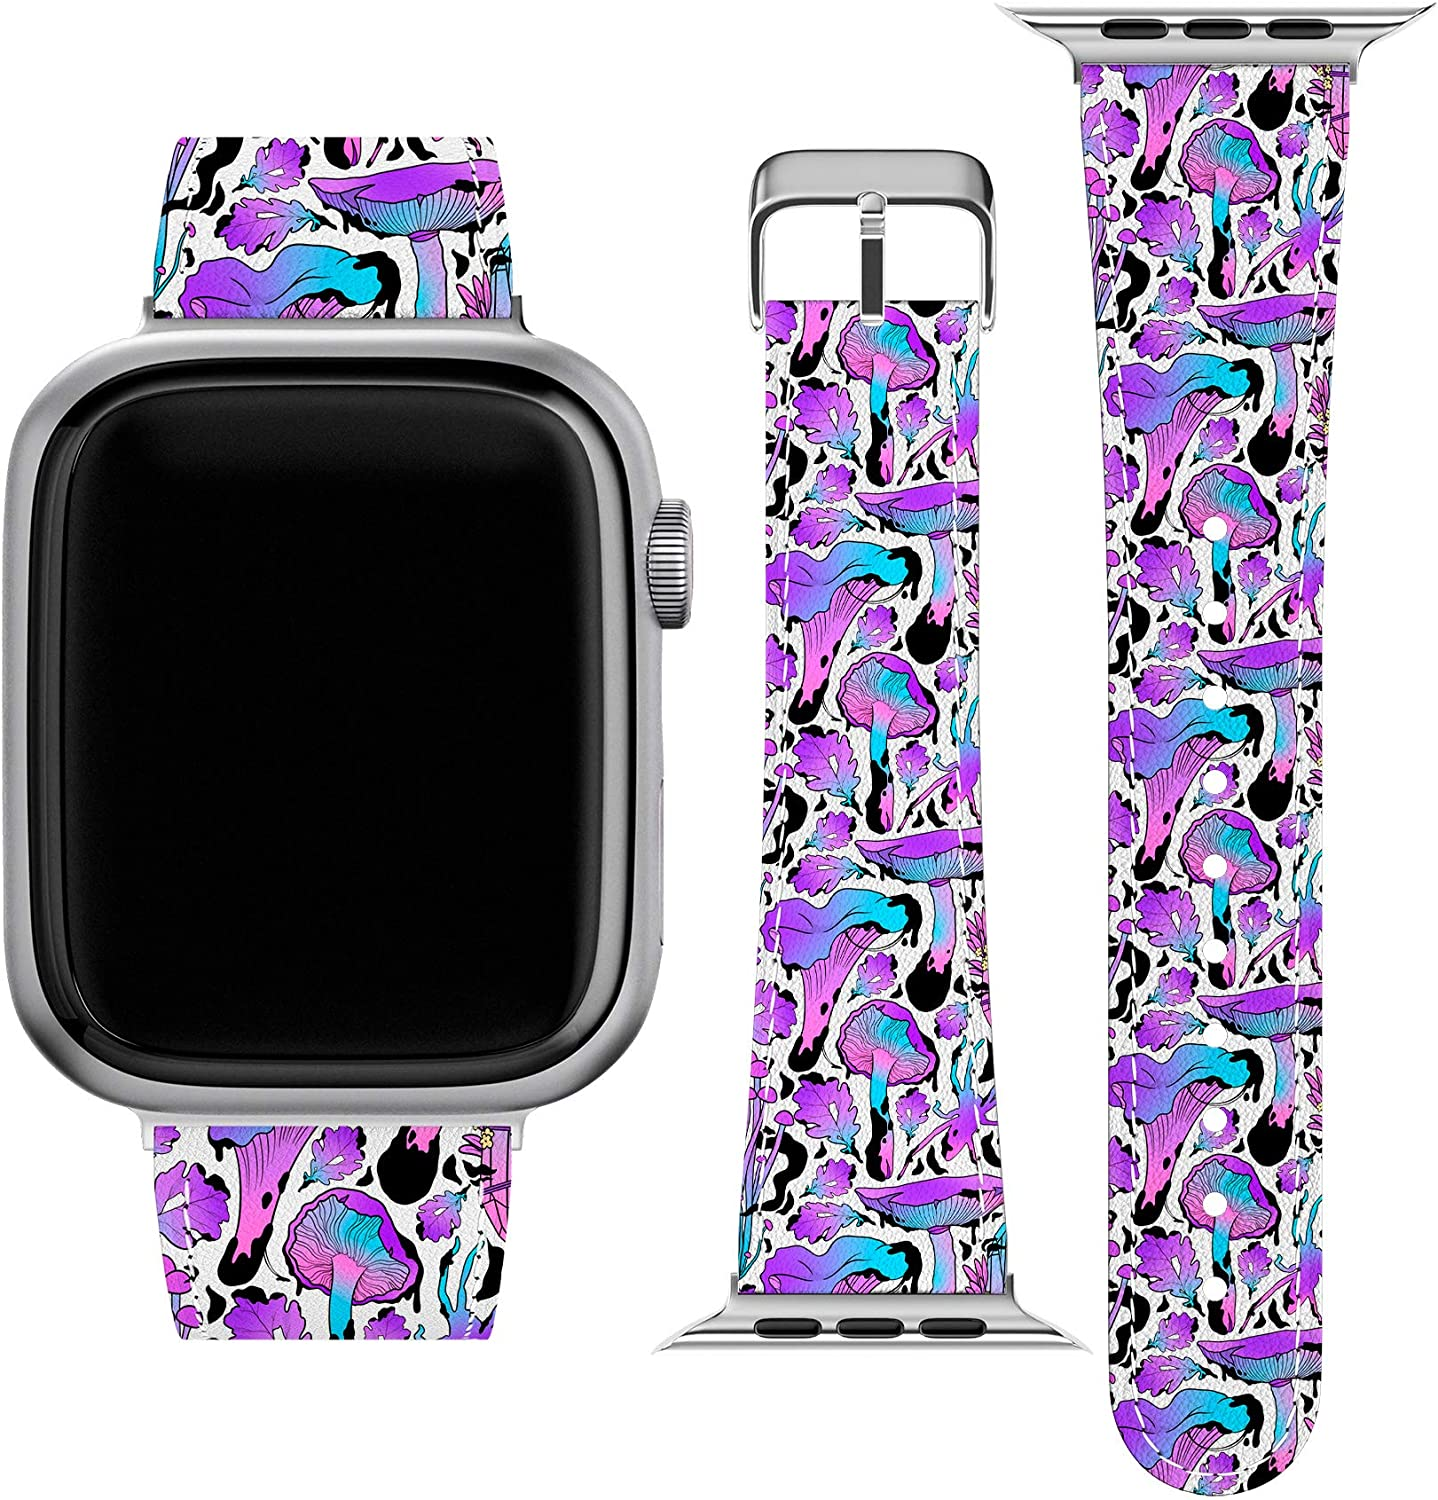 Lex Altern Band Compatible with Apple Watch Series 6 SE 5 4 3 2 1 38mm 40mm 42mm 44mm Crystals Forest Leaf Thin Witchcraft Mushrooms Magic PU Leather Wristband Durable Replacement Strap Belt wh546